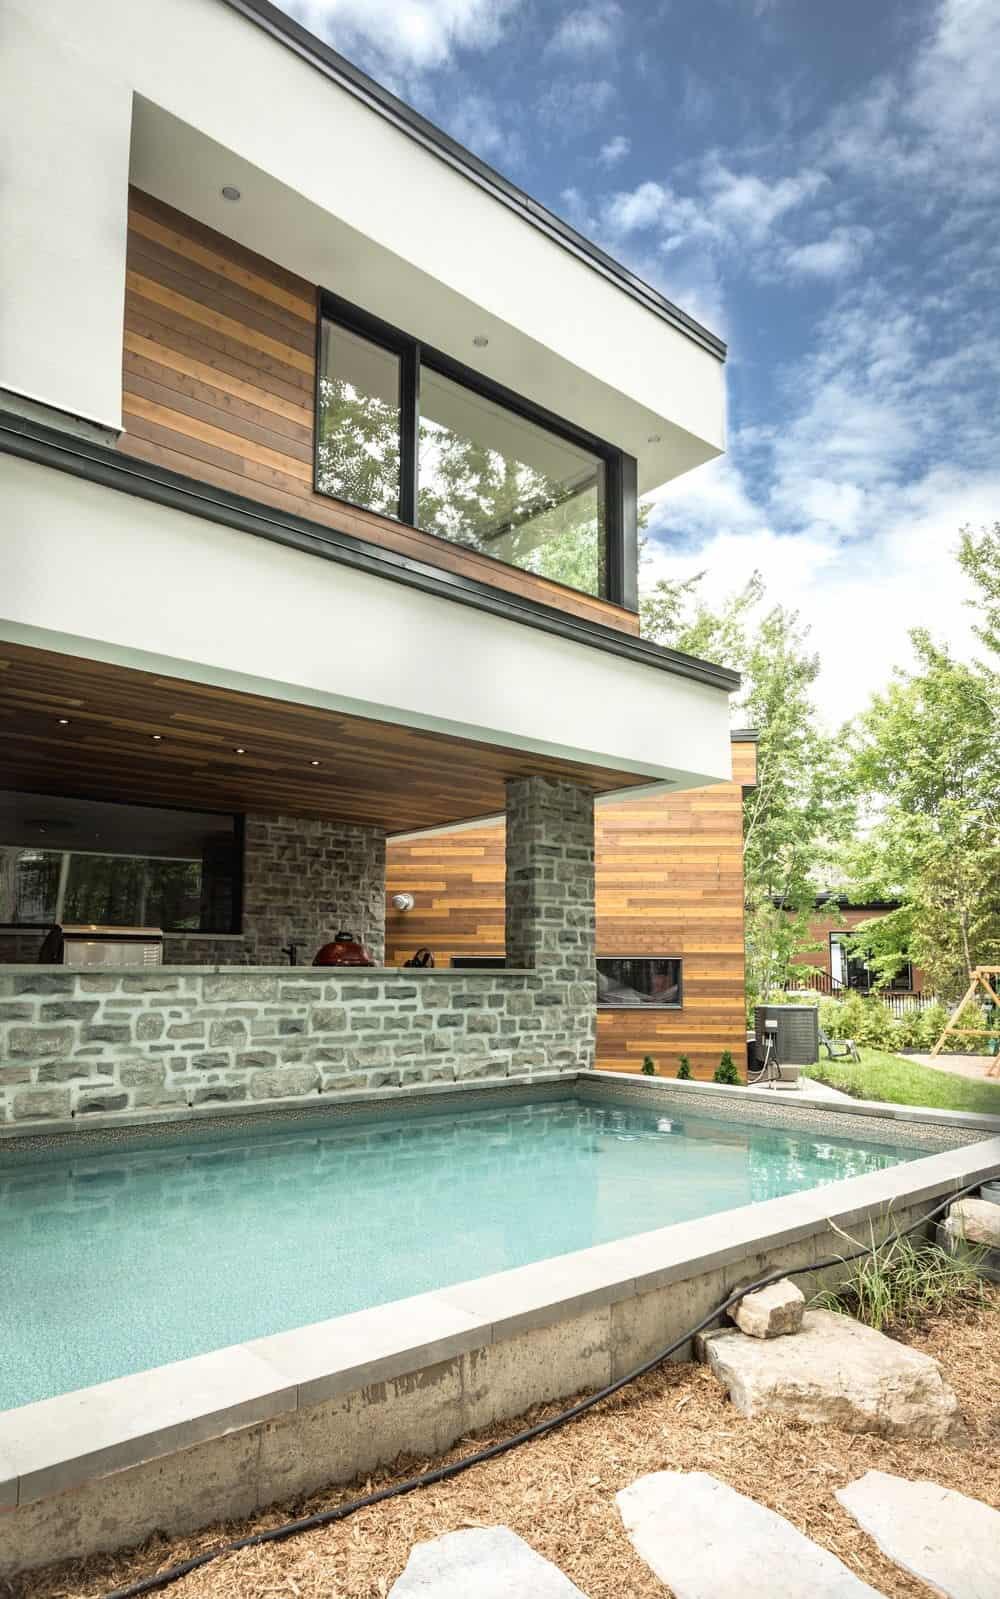 The Outdoor Area Features A Rectangular Swimming Pool. Photo Credit:  Dominic Boudreau